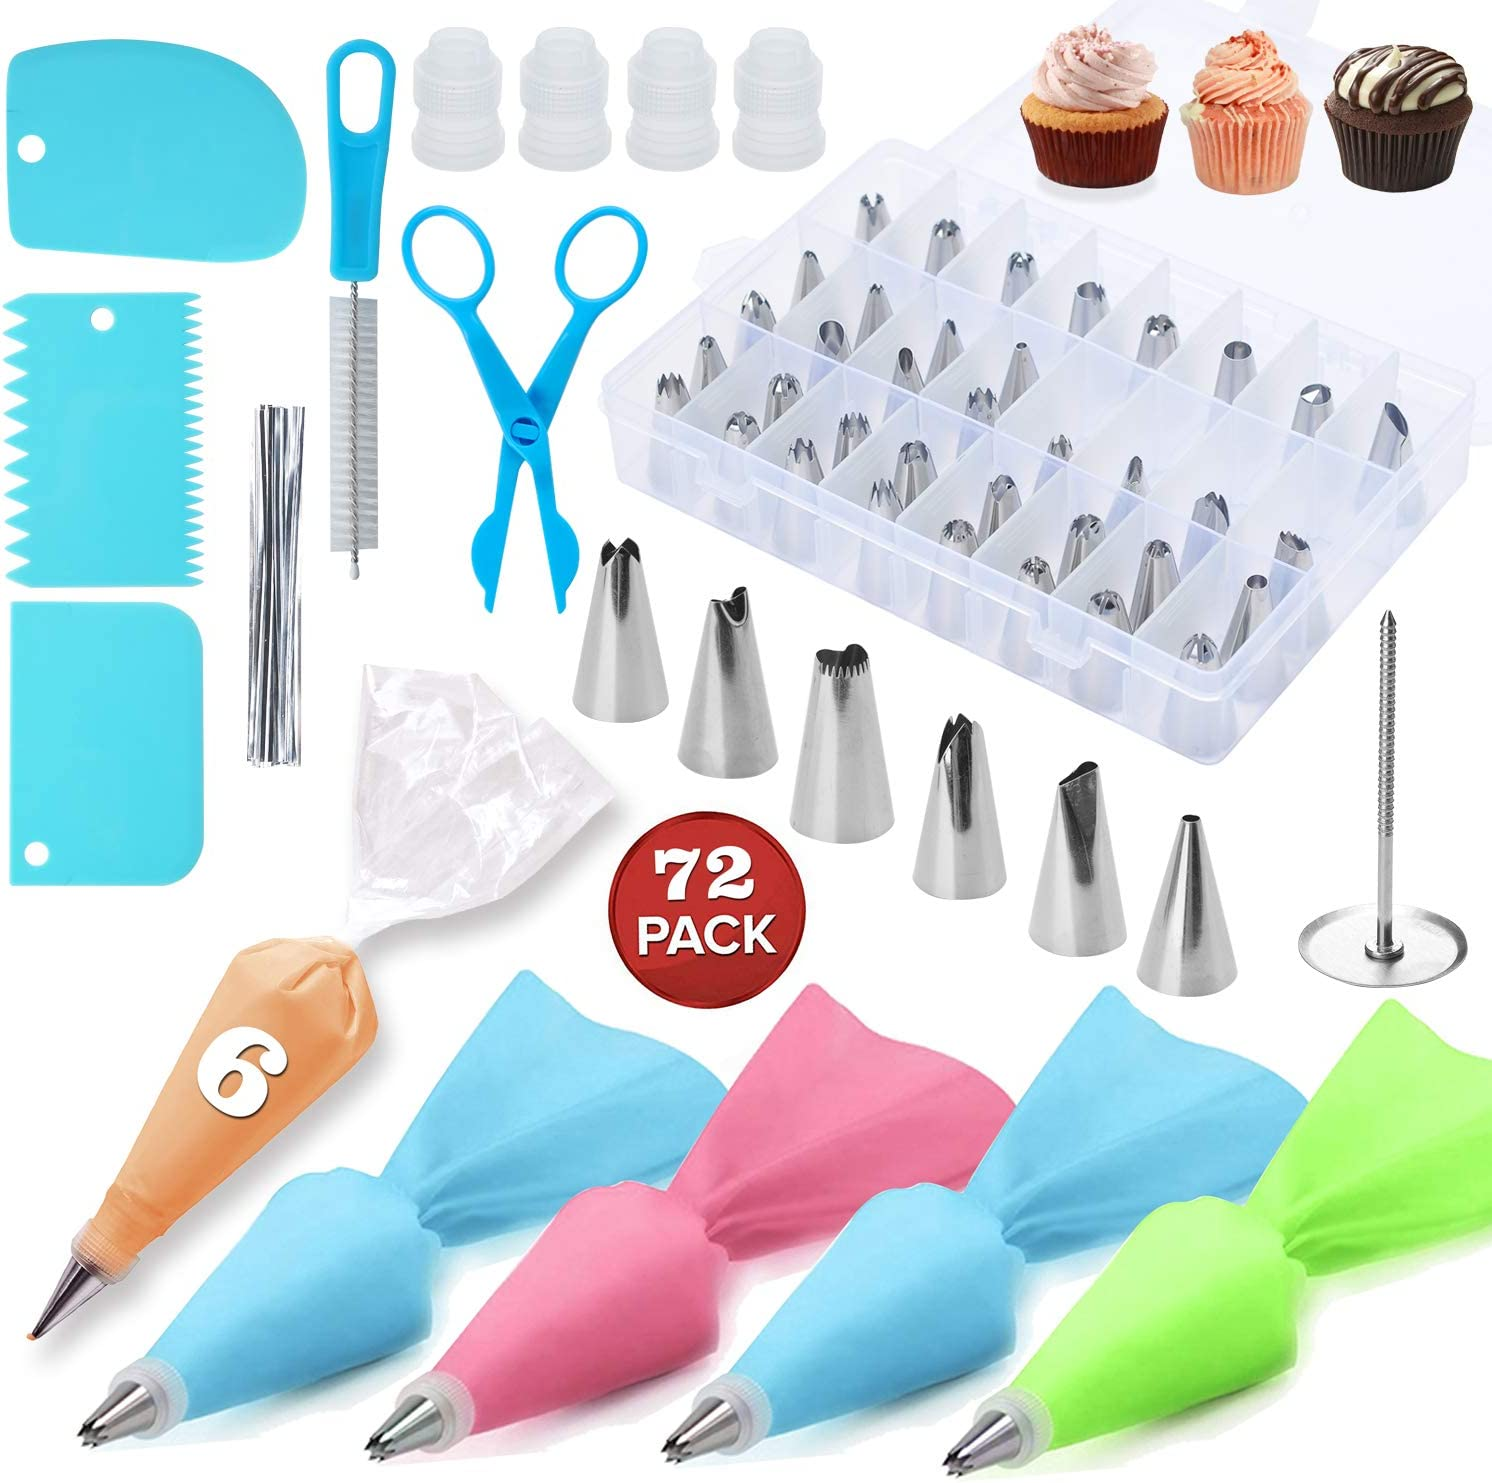 Painted Pen Pastry Decor Manicure Craft Tools Face Clay Tool Painting Set 3 Pcs